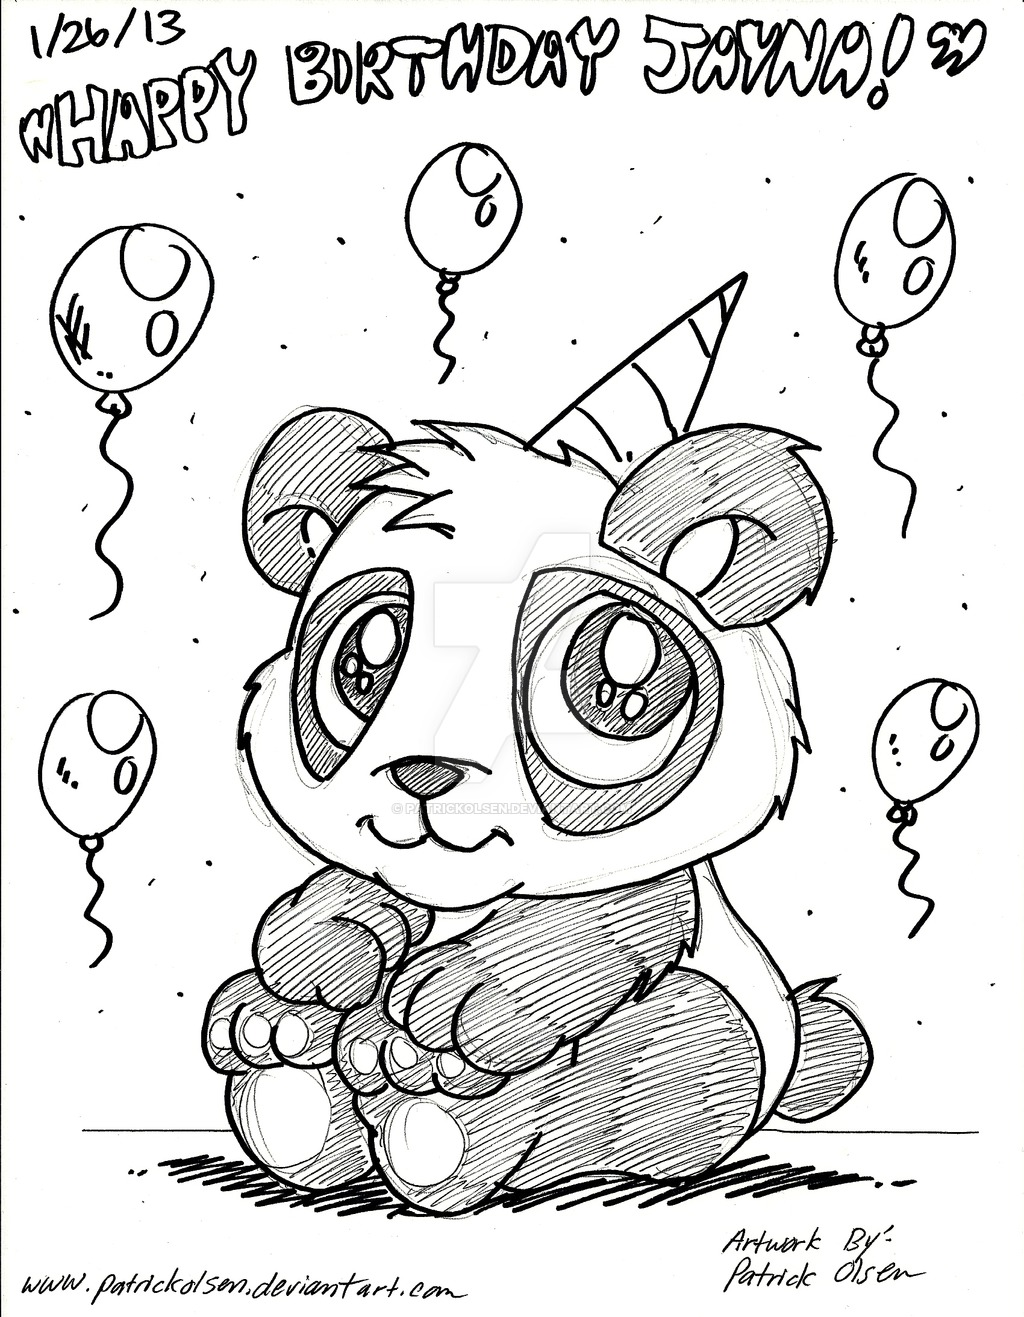 bday drawings ; drawn-birthday-panda-2